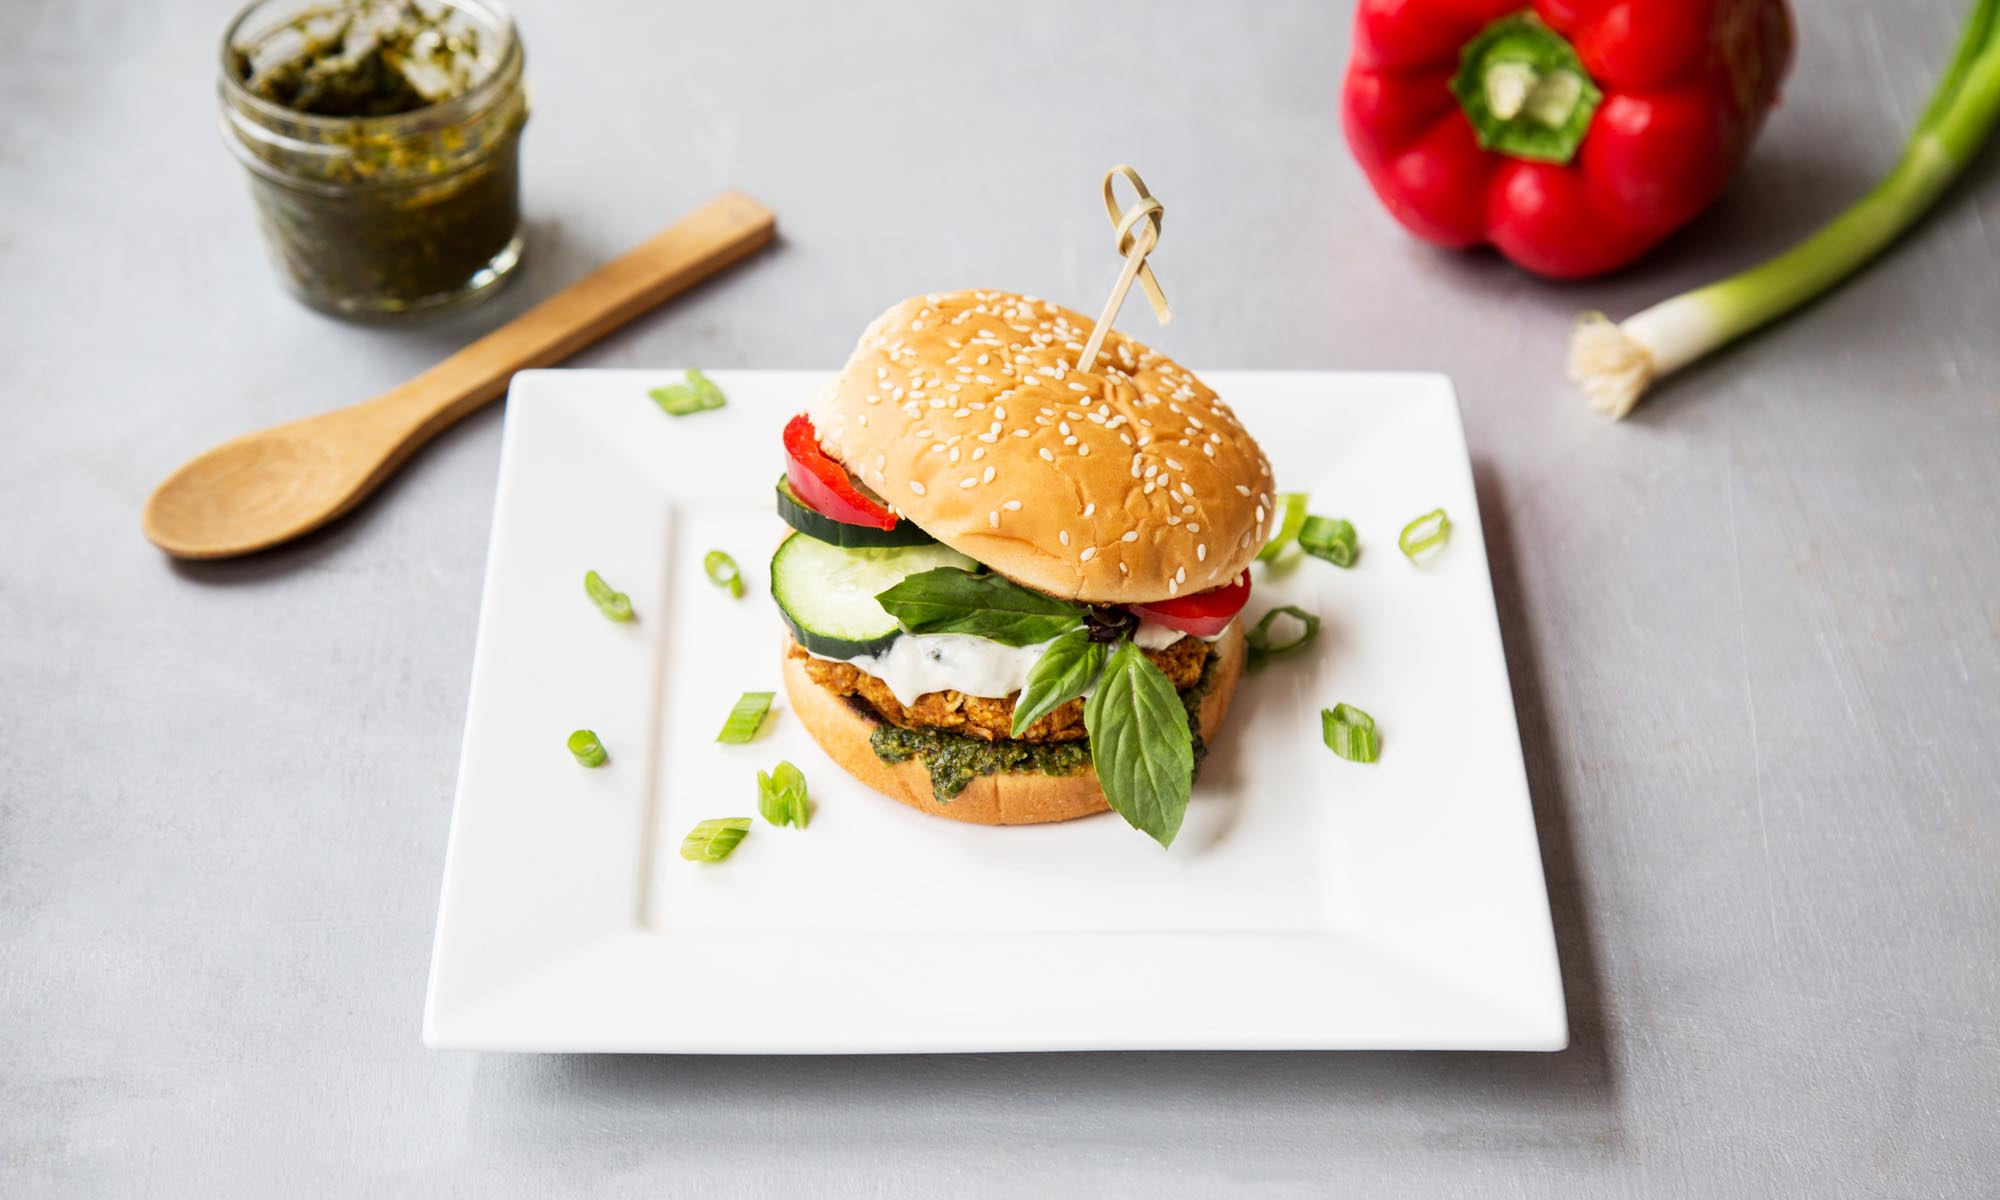 Thai Curry Burger with Coconut Basil Sauce and Curry Pesto